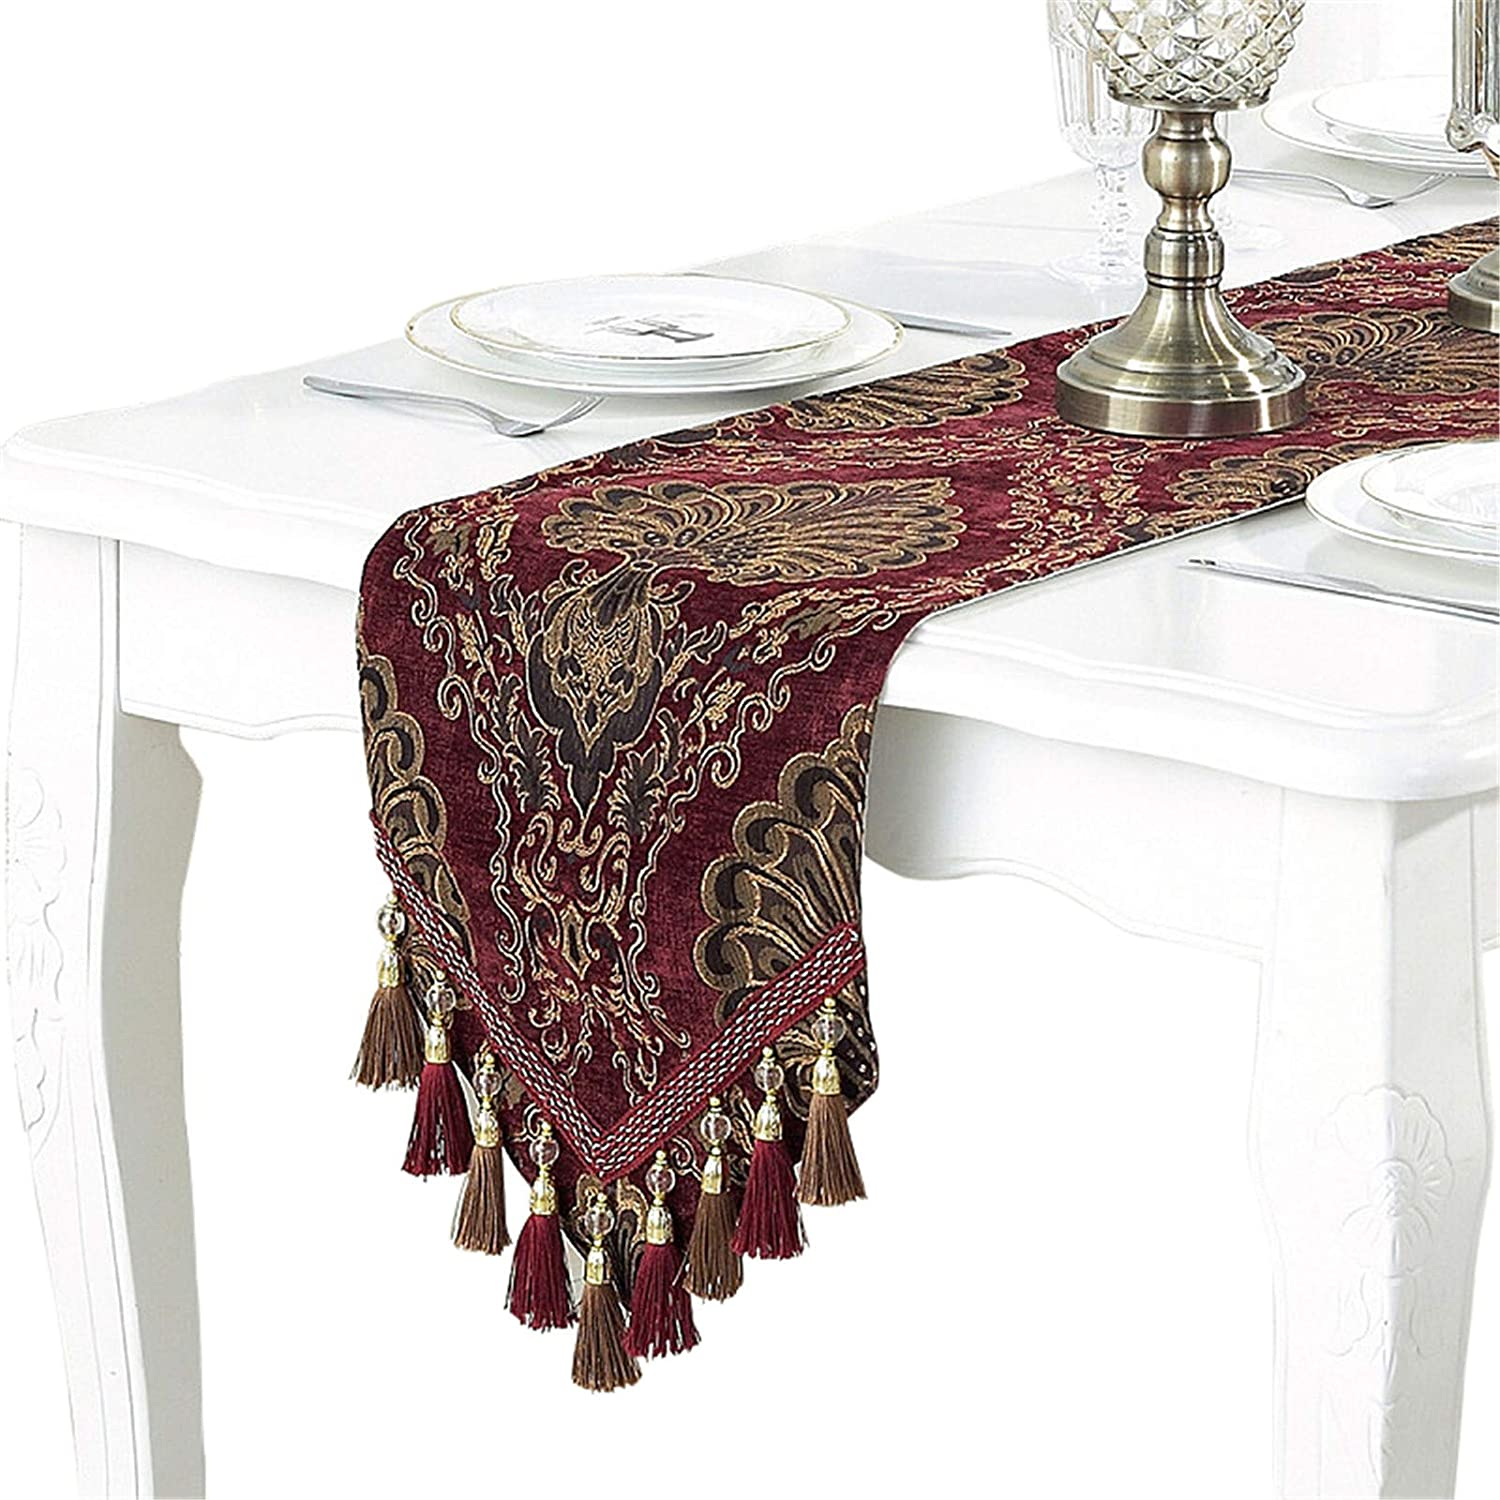 Bettery Home Embroidery Luxury Table Limited price sale Tabl sale Jacquard Fabric Runner